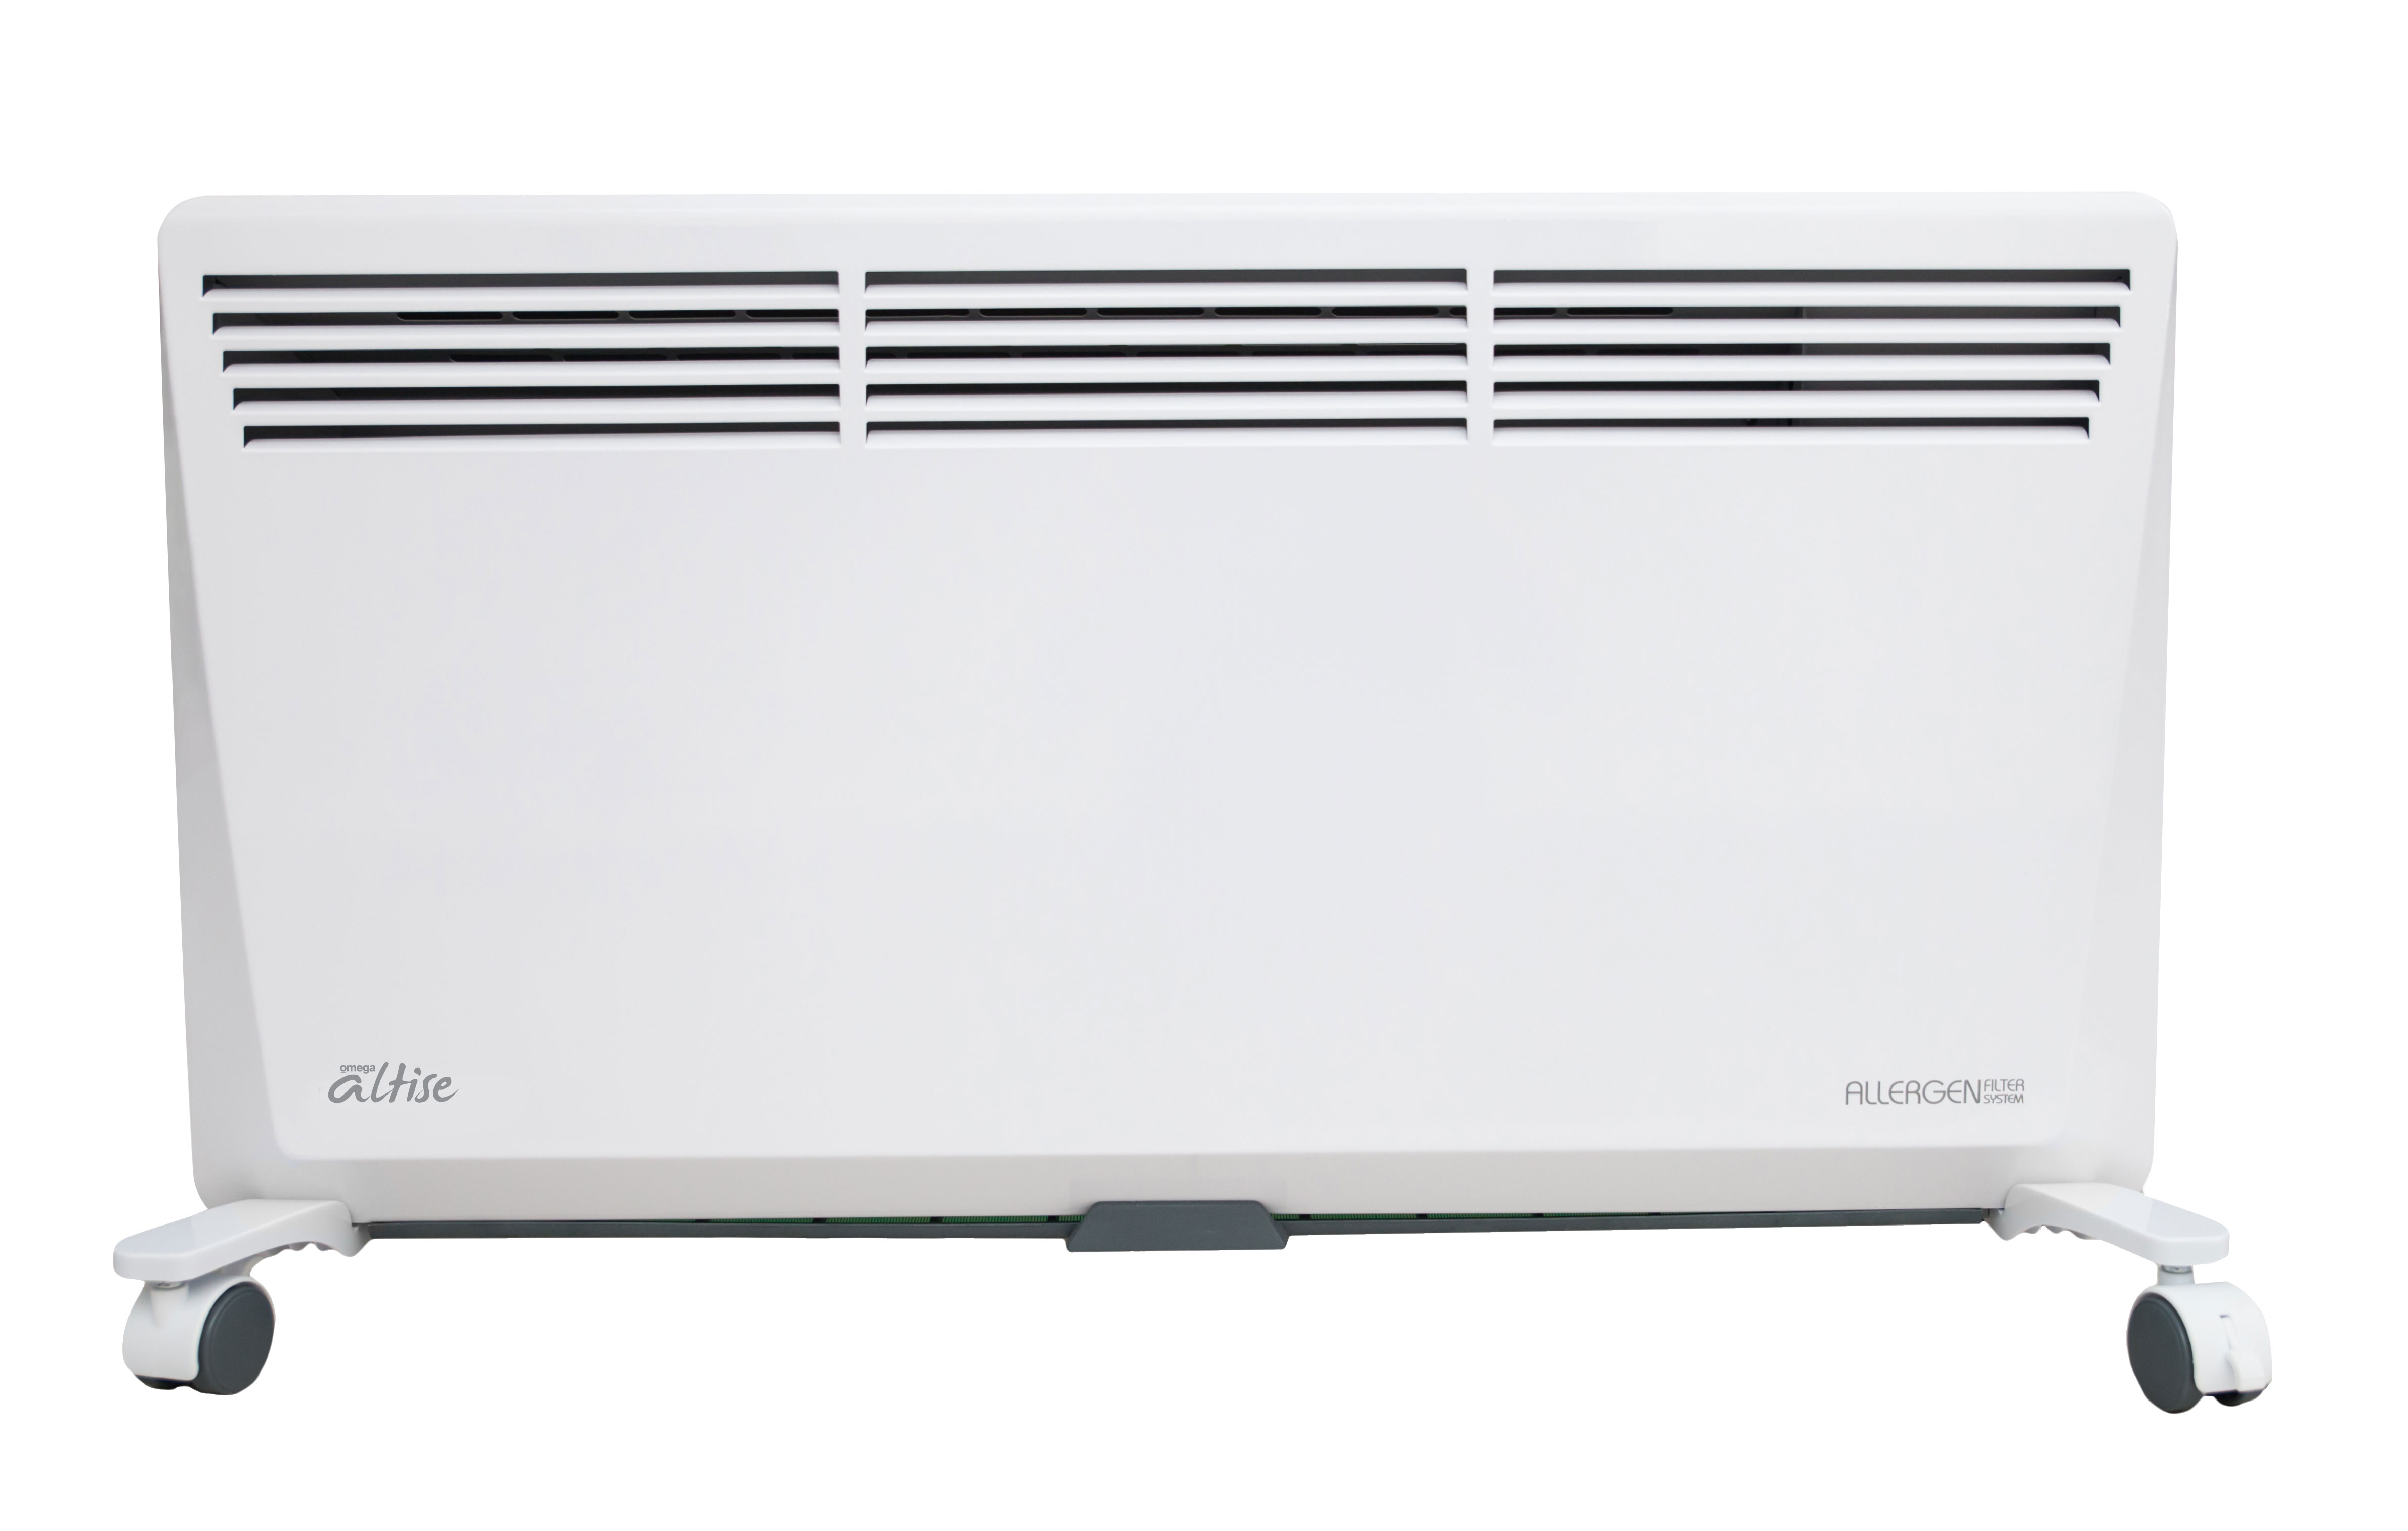 Omega Altise product Panel Heater - With Filter1500WANPE1500W